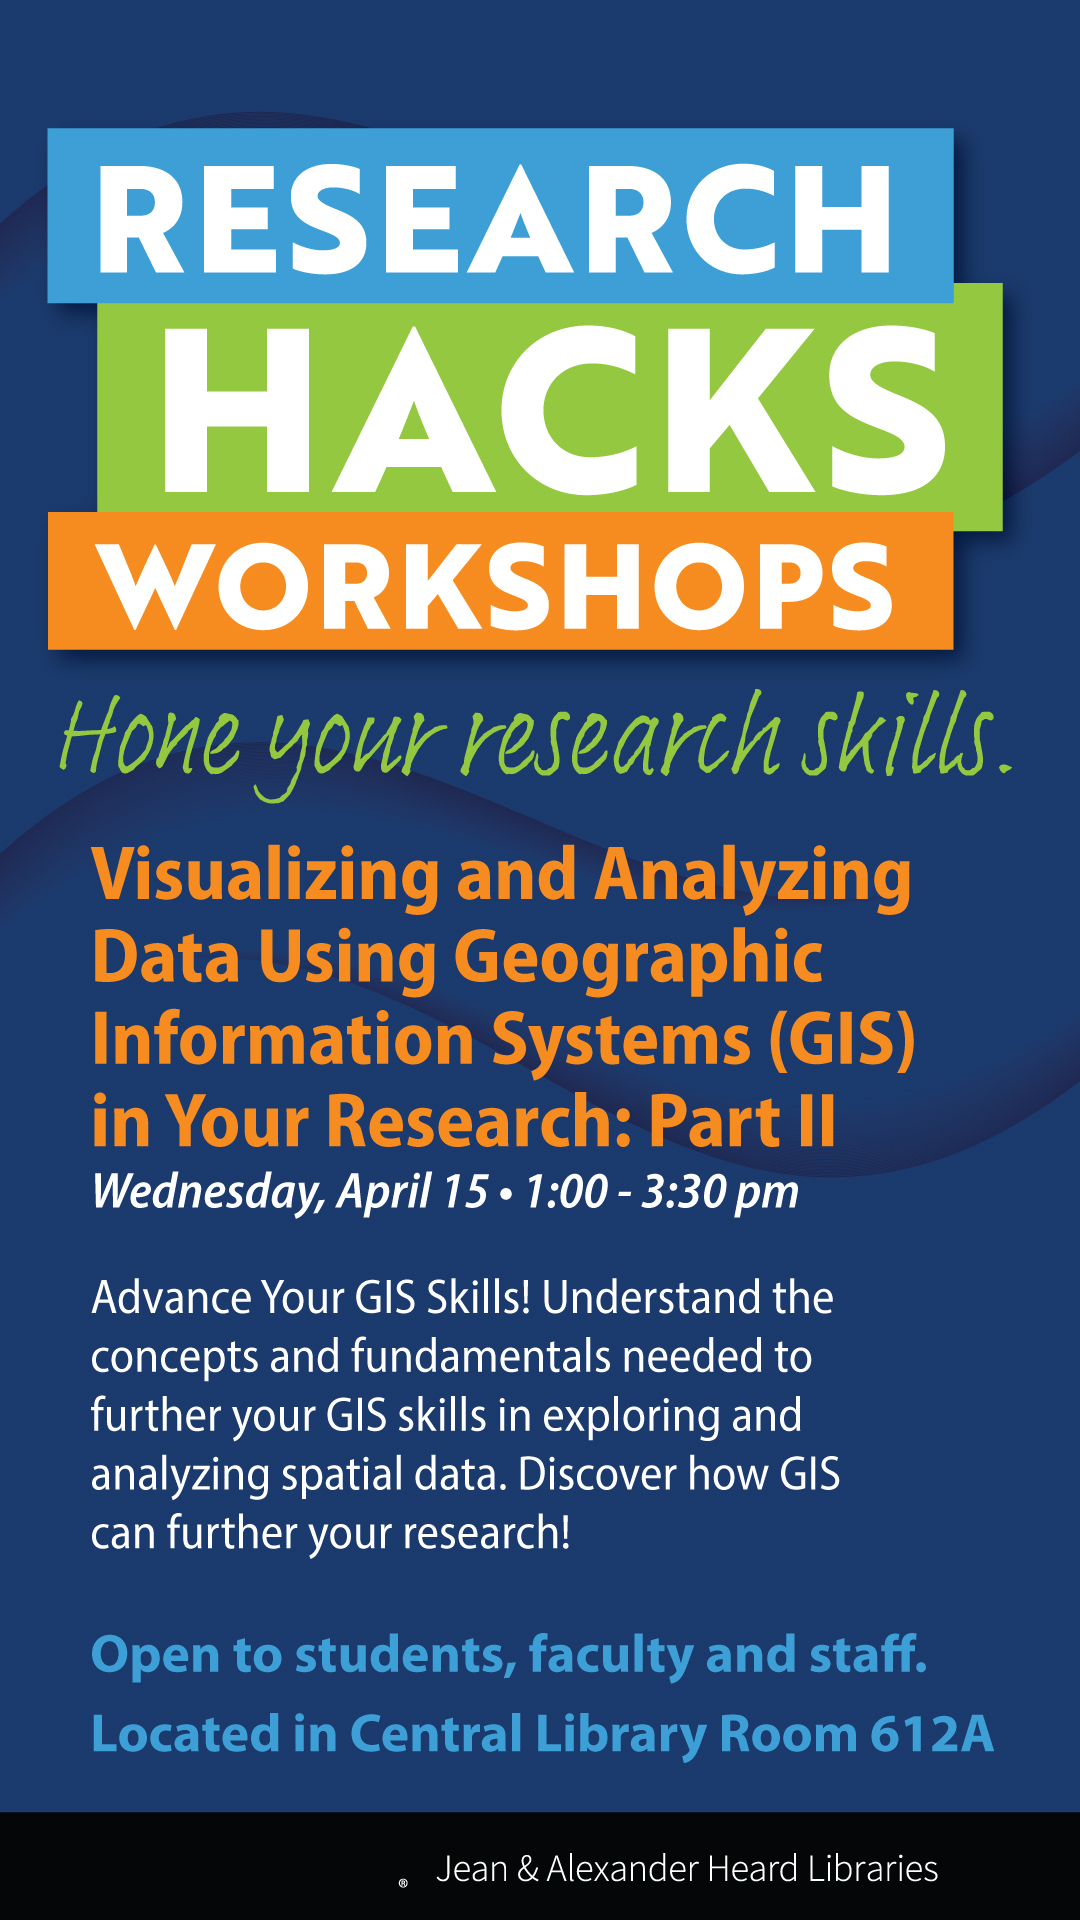 Visualizing and Analyzing Data Using GIS (Geographic Information Systems) in Your Research: Part II